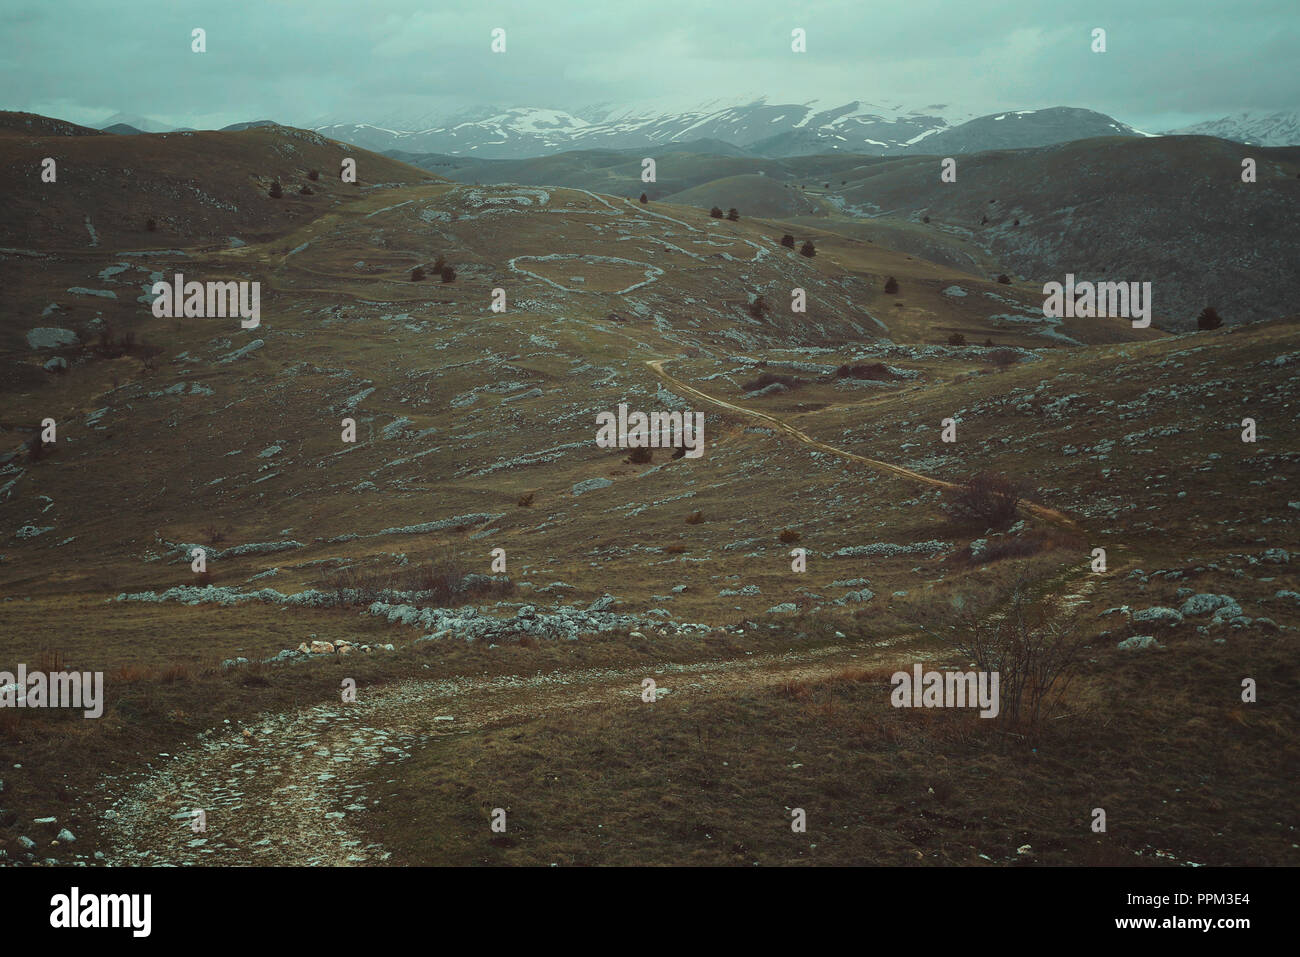 Desolate mountain trails. Abruzzo, Italy - Stock Image